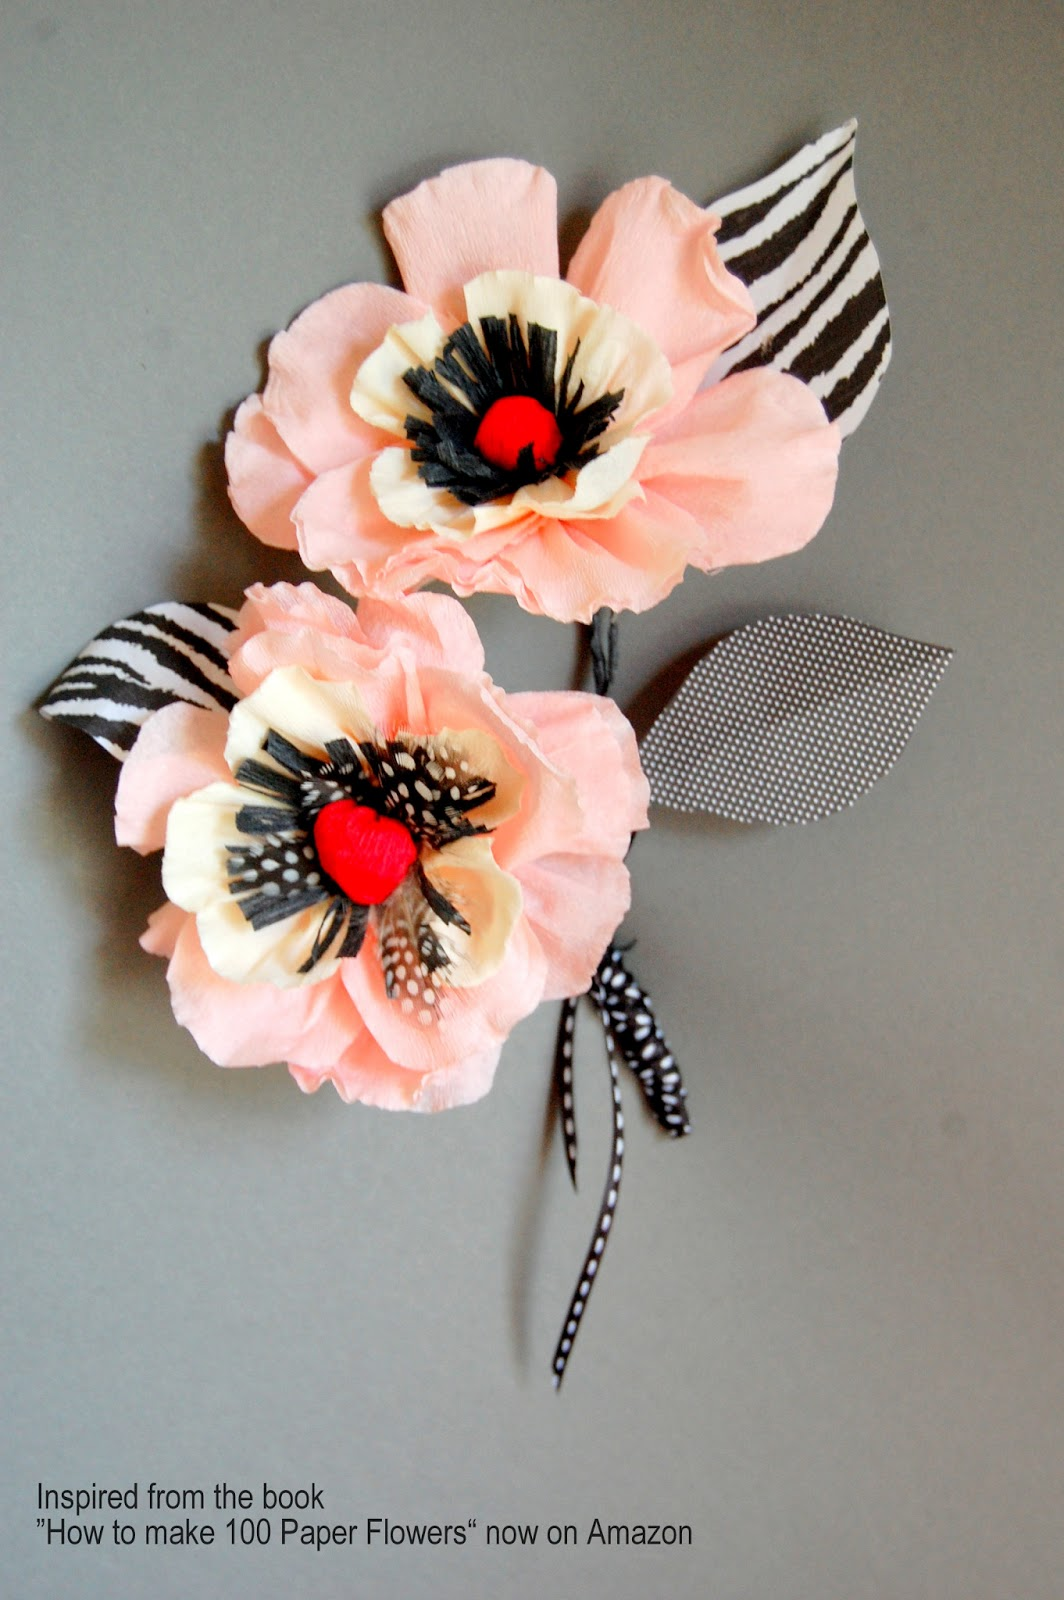 How To Make Handmade Flowers From Paper Tutorial Whimsical Paper Flowers Poppy How To Make Diy